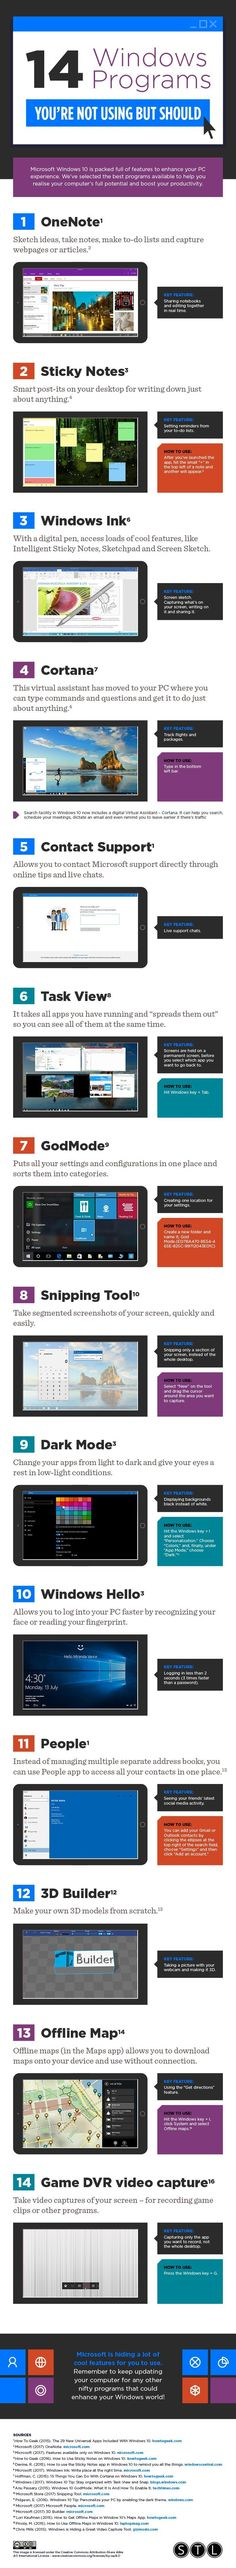 14 Must-Have Windows Tools for Social Media Marketers [Infographic] Computer Technology, Computer Programming, Computer Science, Computer Tips, Computer Help, Microsoft Word, Microsoft Windows, Microsoft Office, Marketing Goals